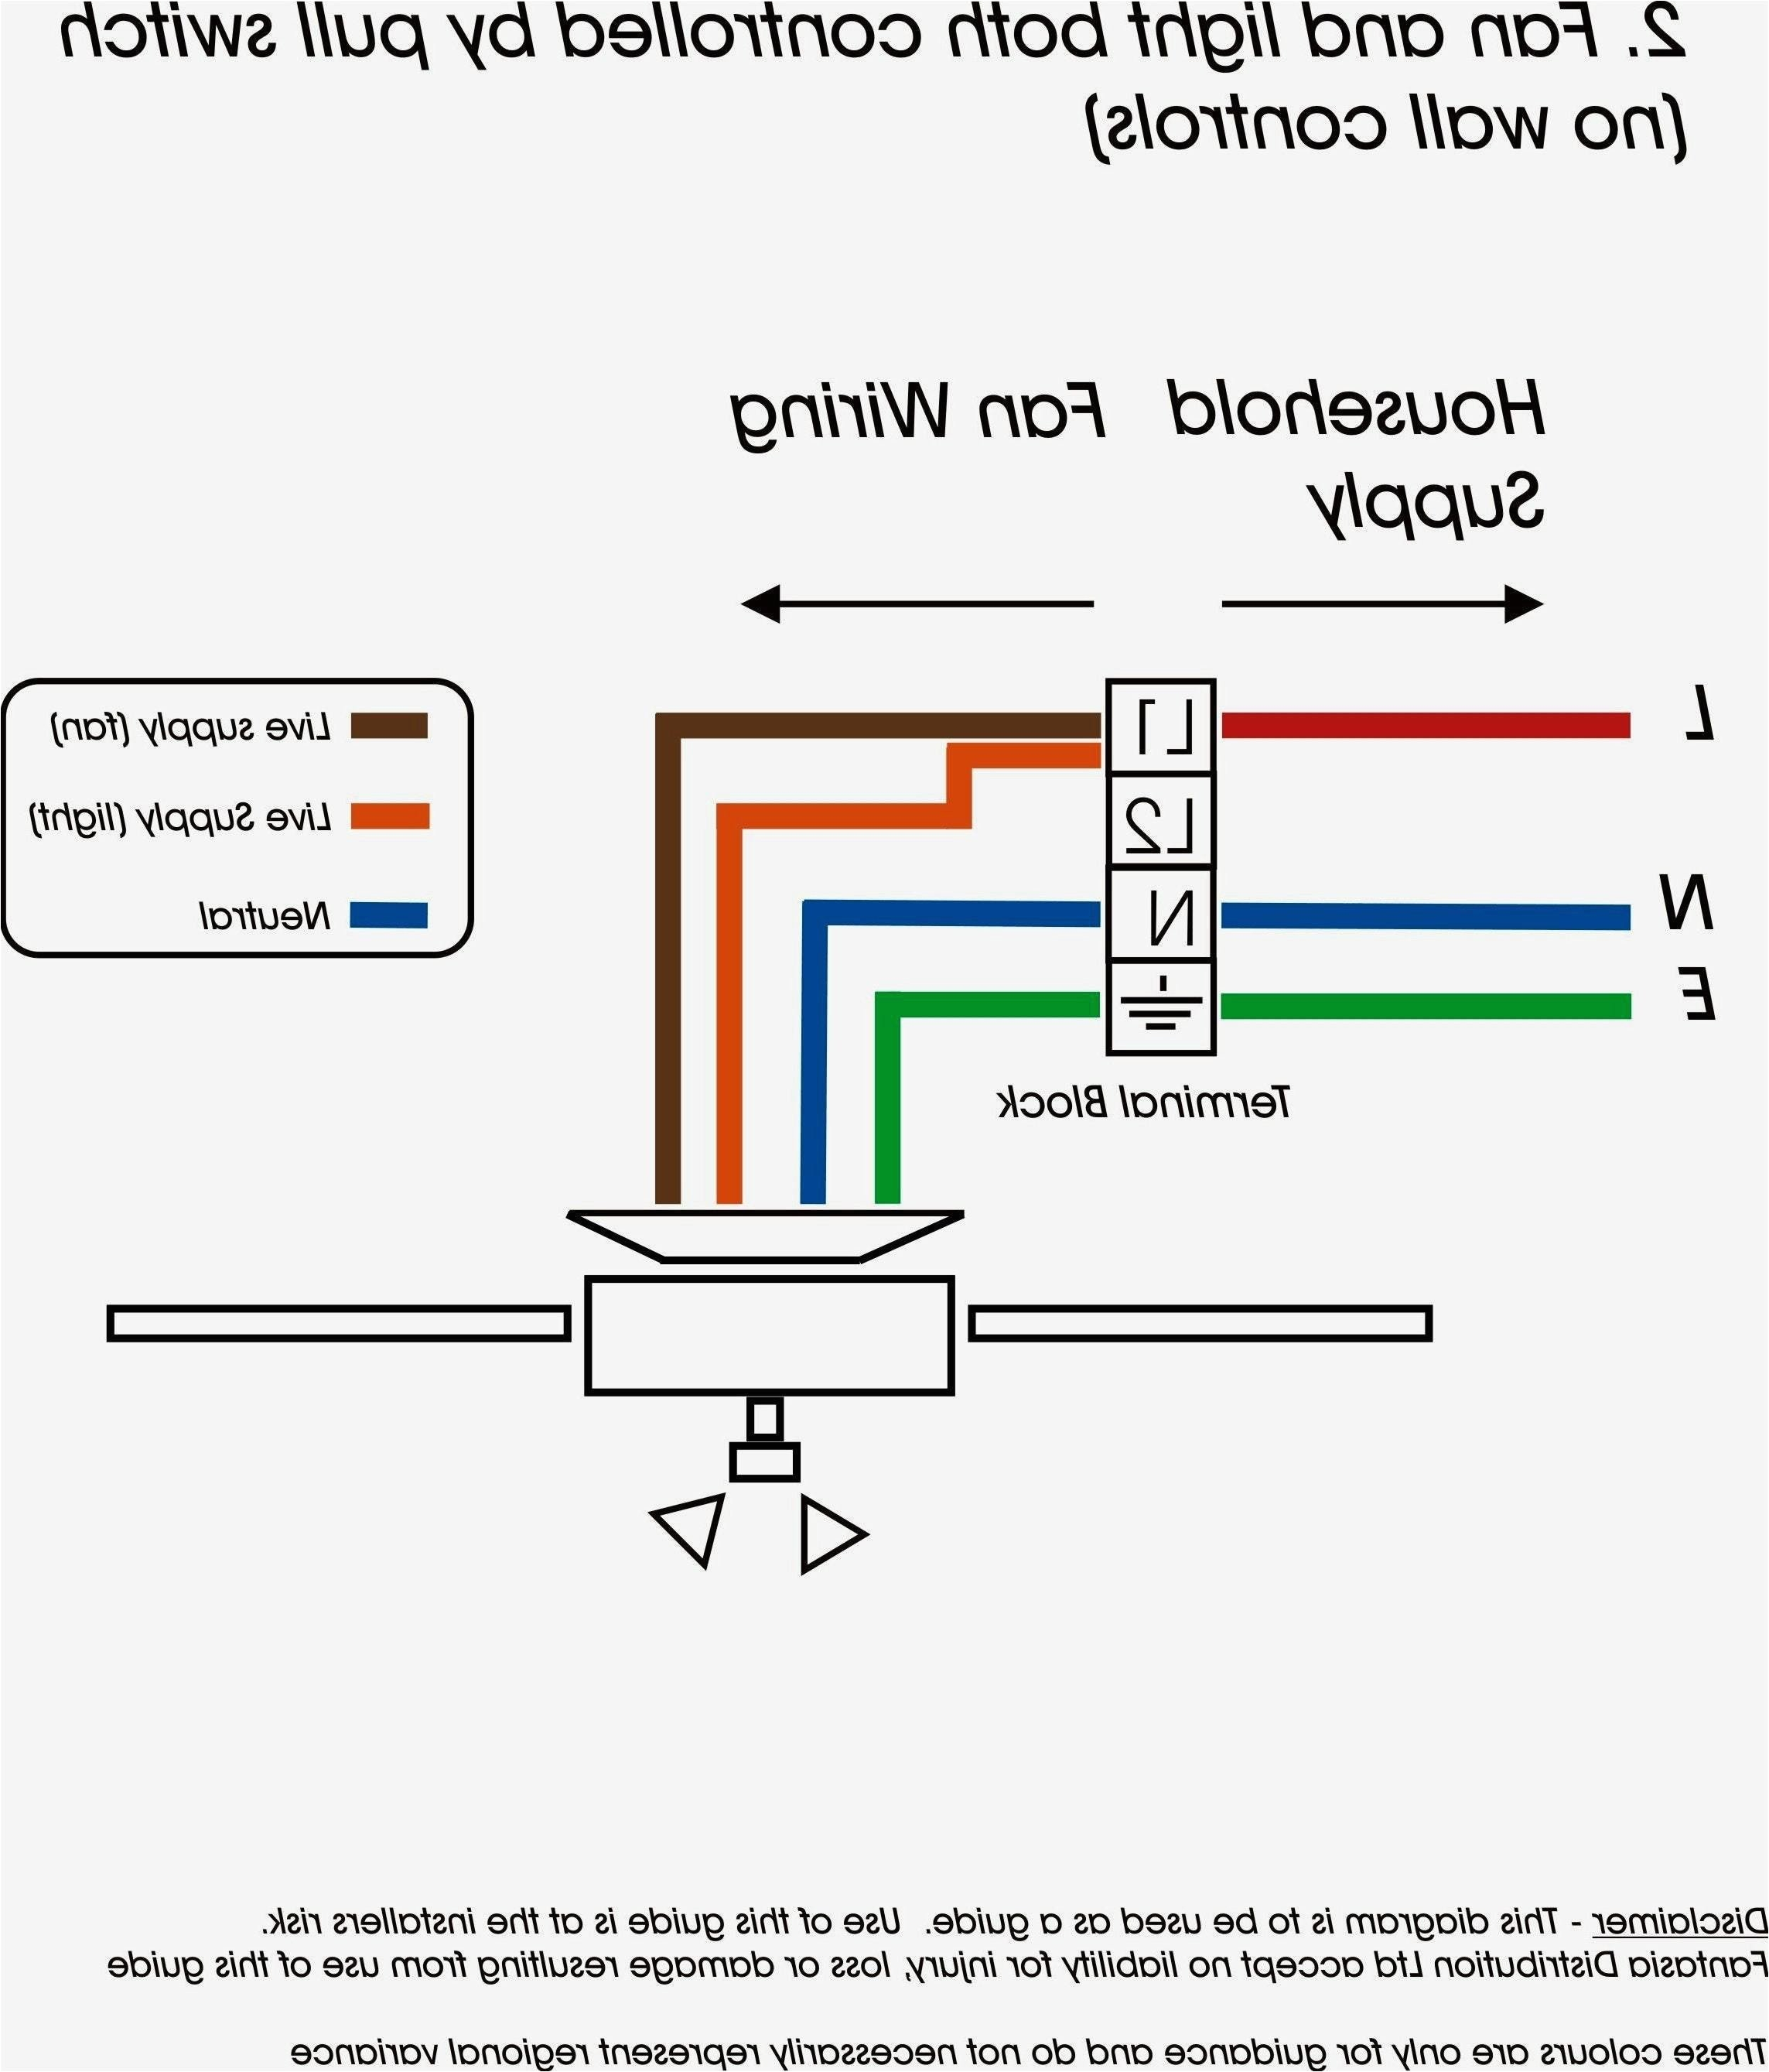 high low off 3 way rotary switch wiring diagram the uptodate hdmi switch schematic low wiringdiagram